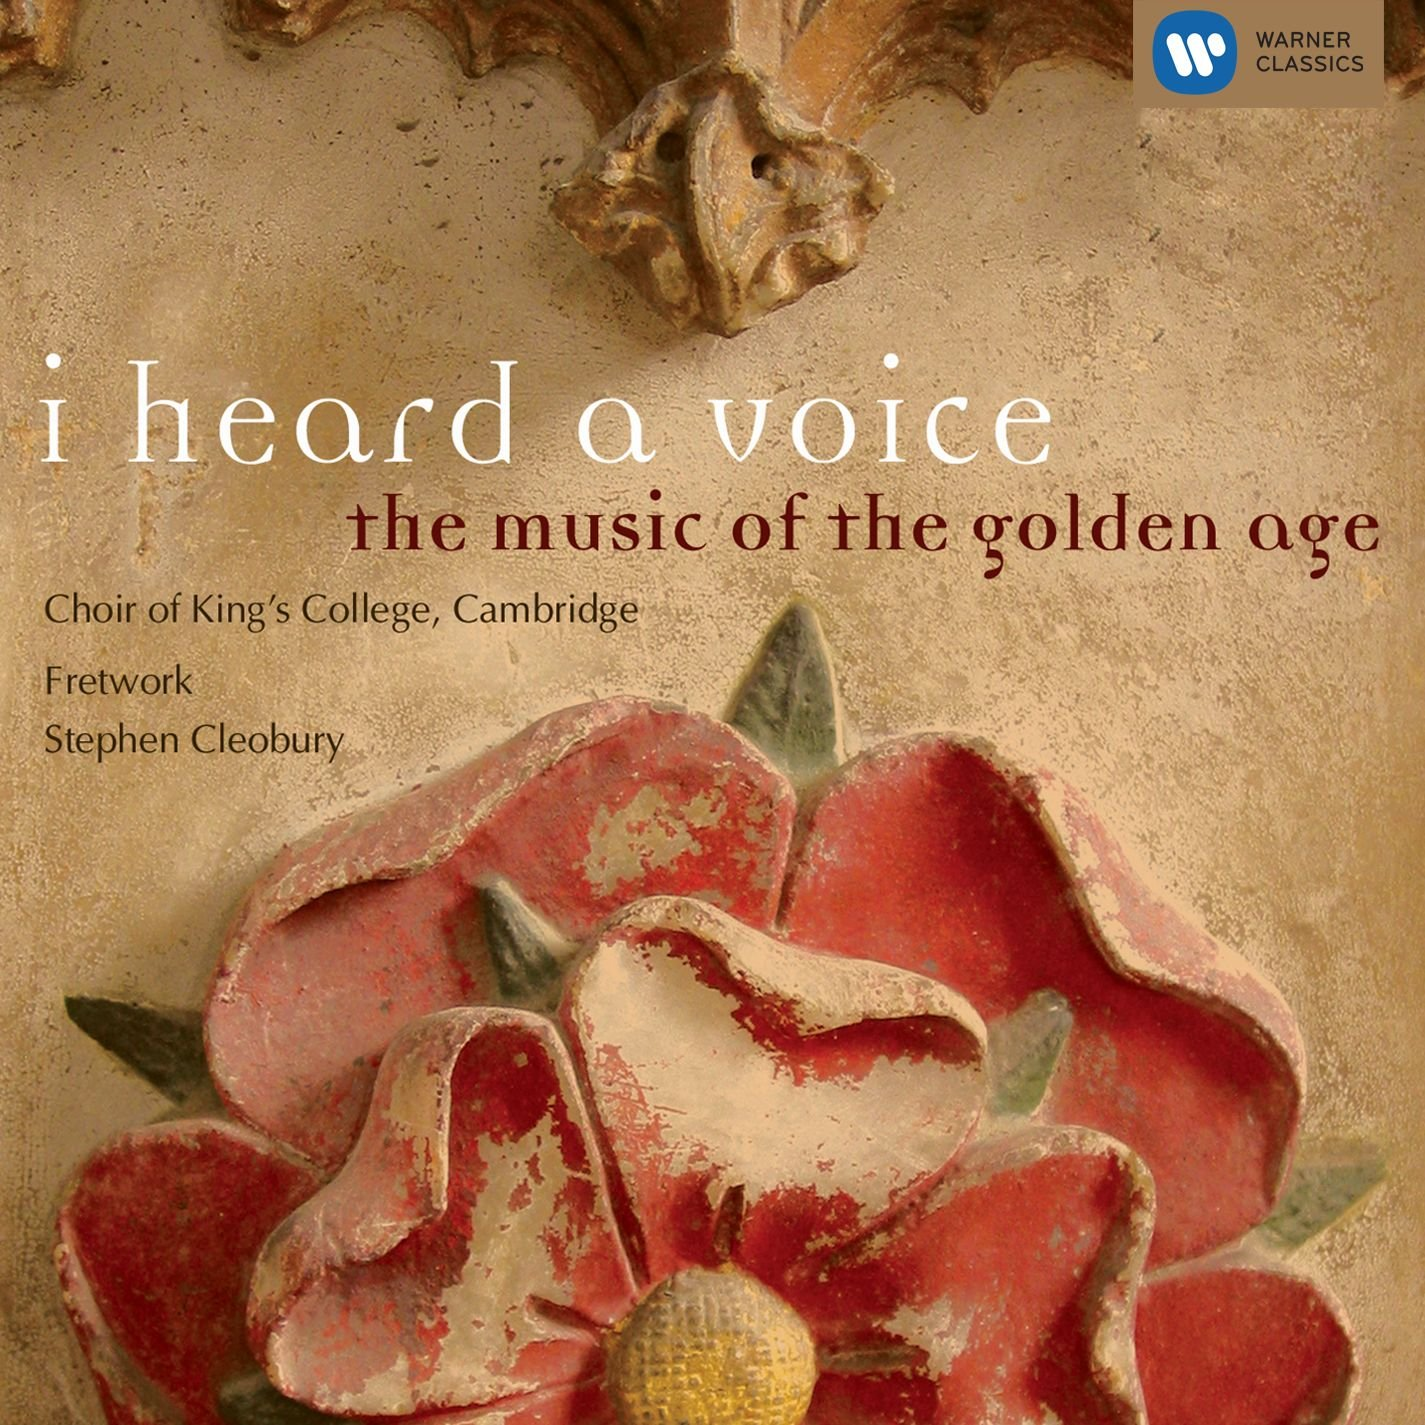 I Heard a Voice: Music of the Golden Age by Warner Classics